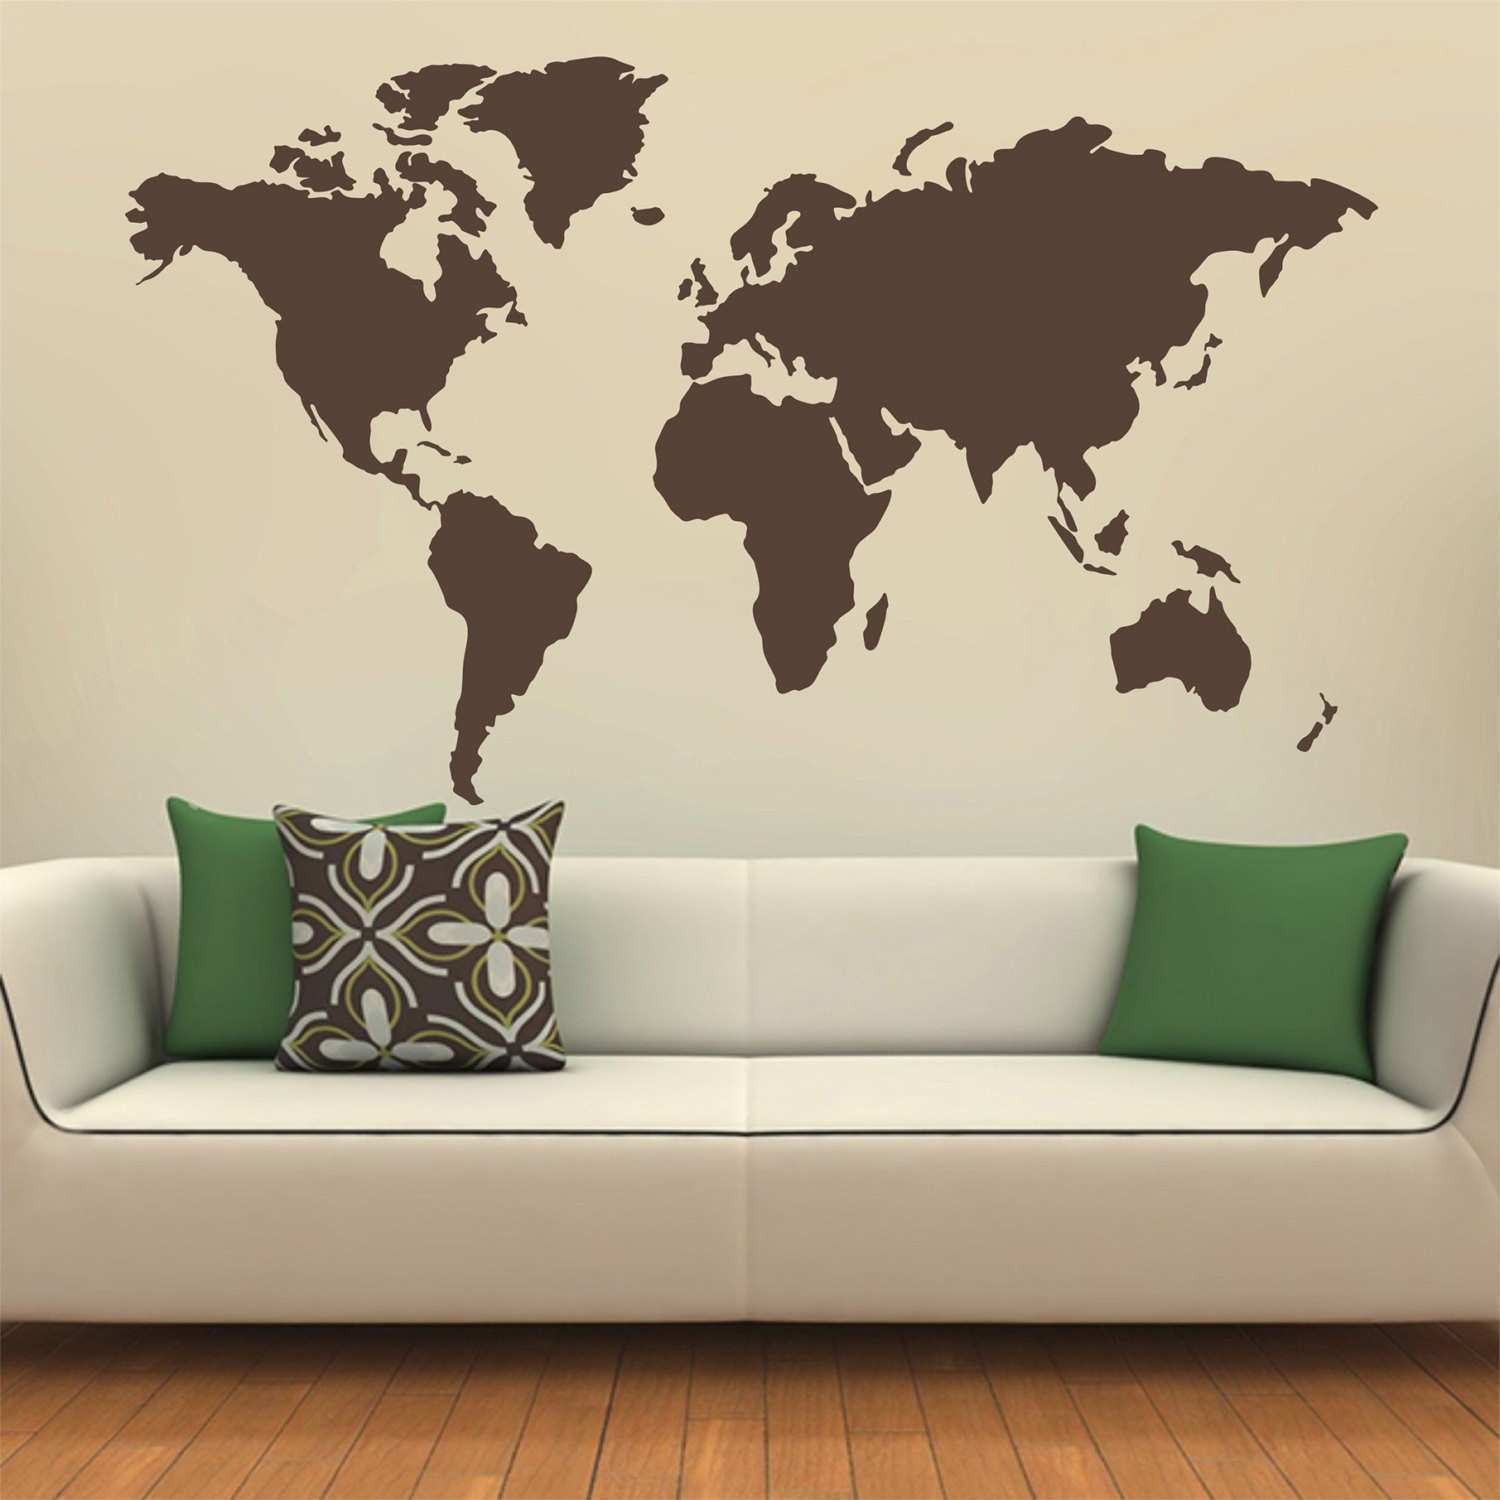 Part 3 Maps Asia and World Wide Collection